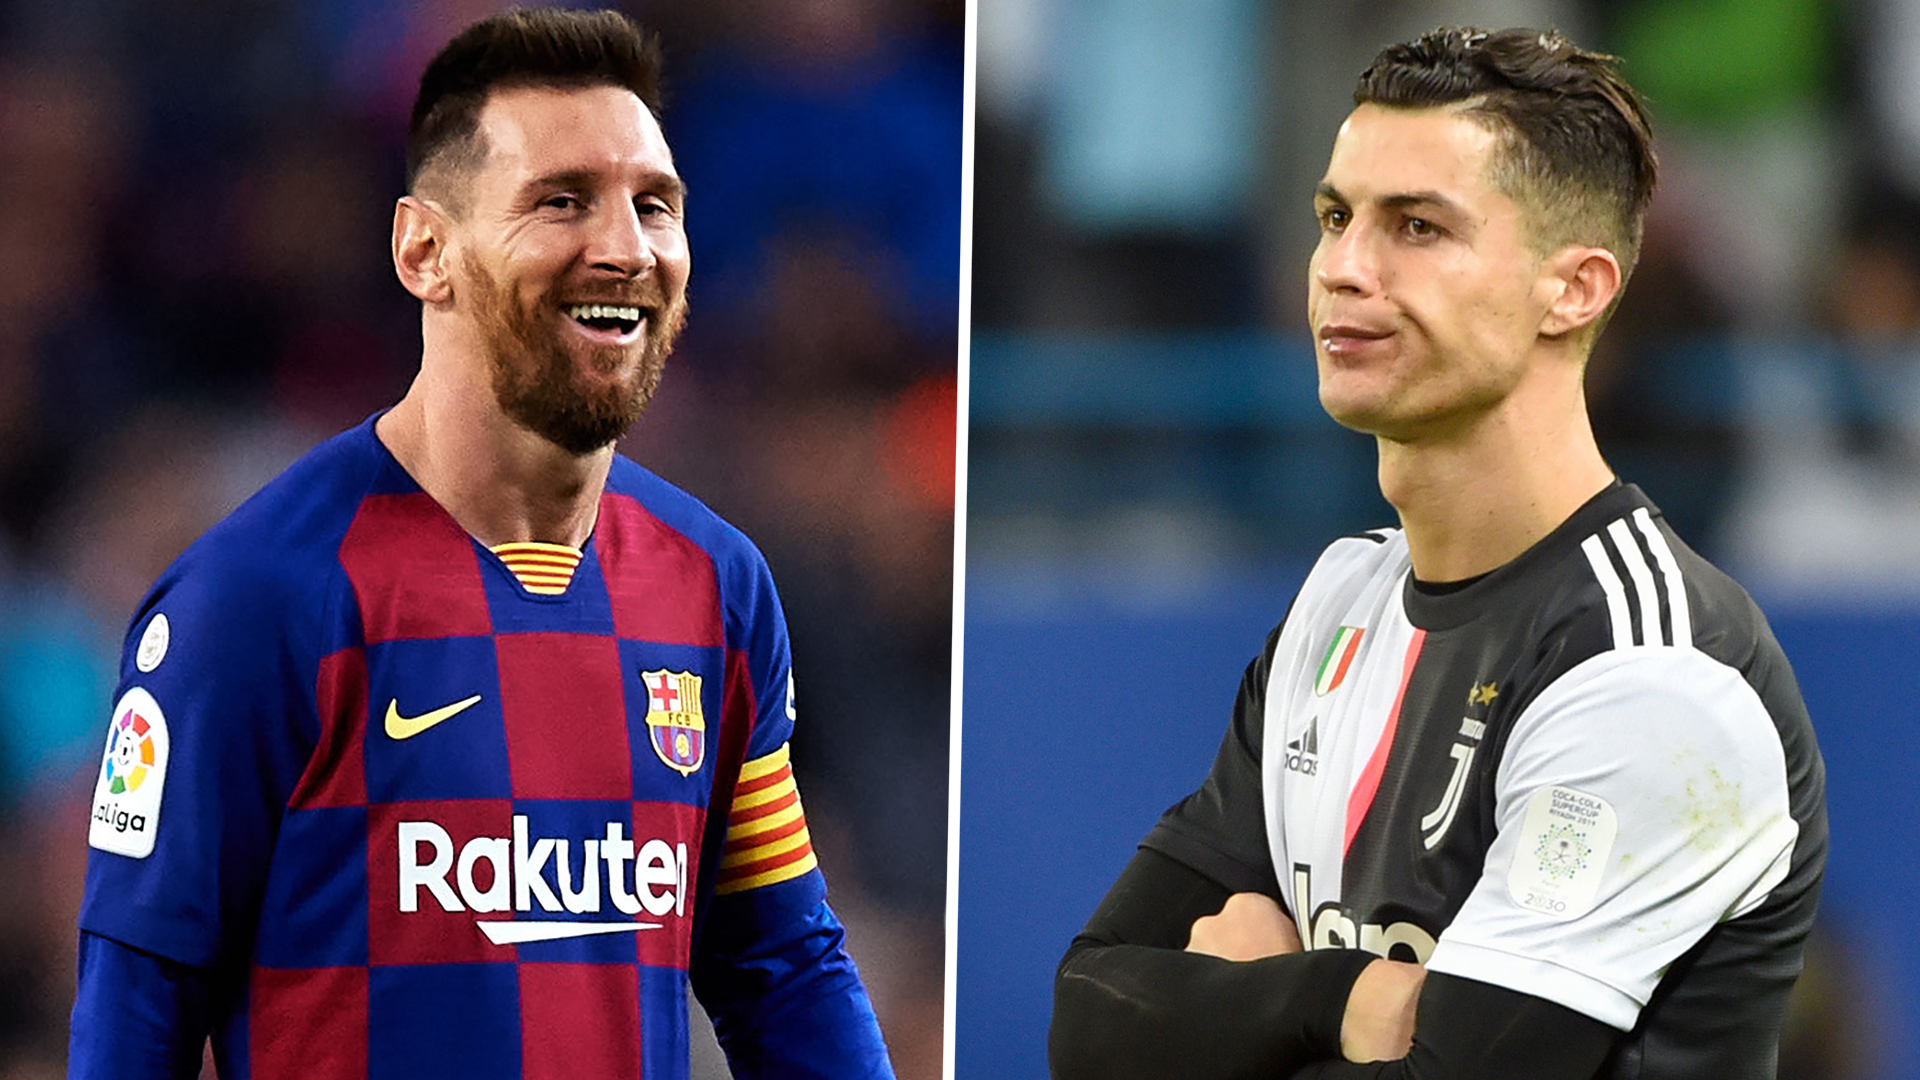 Ronaldo has Messi as 'number one' but snubs CR7 in top five that includes Salah & Mbappe